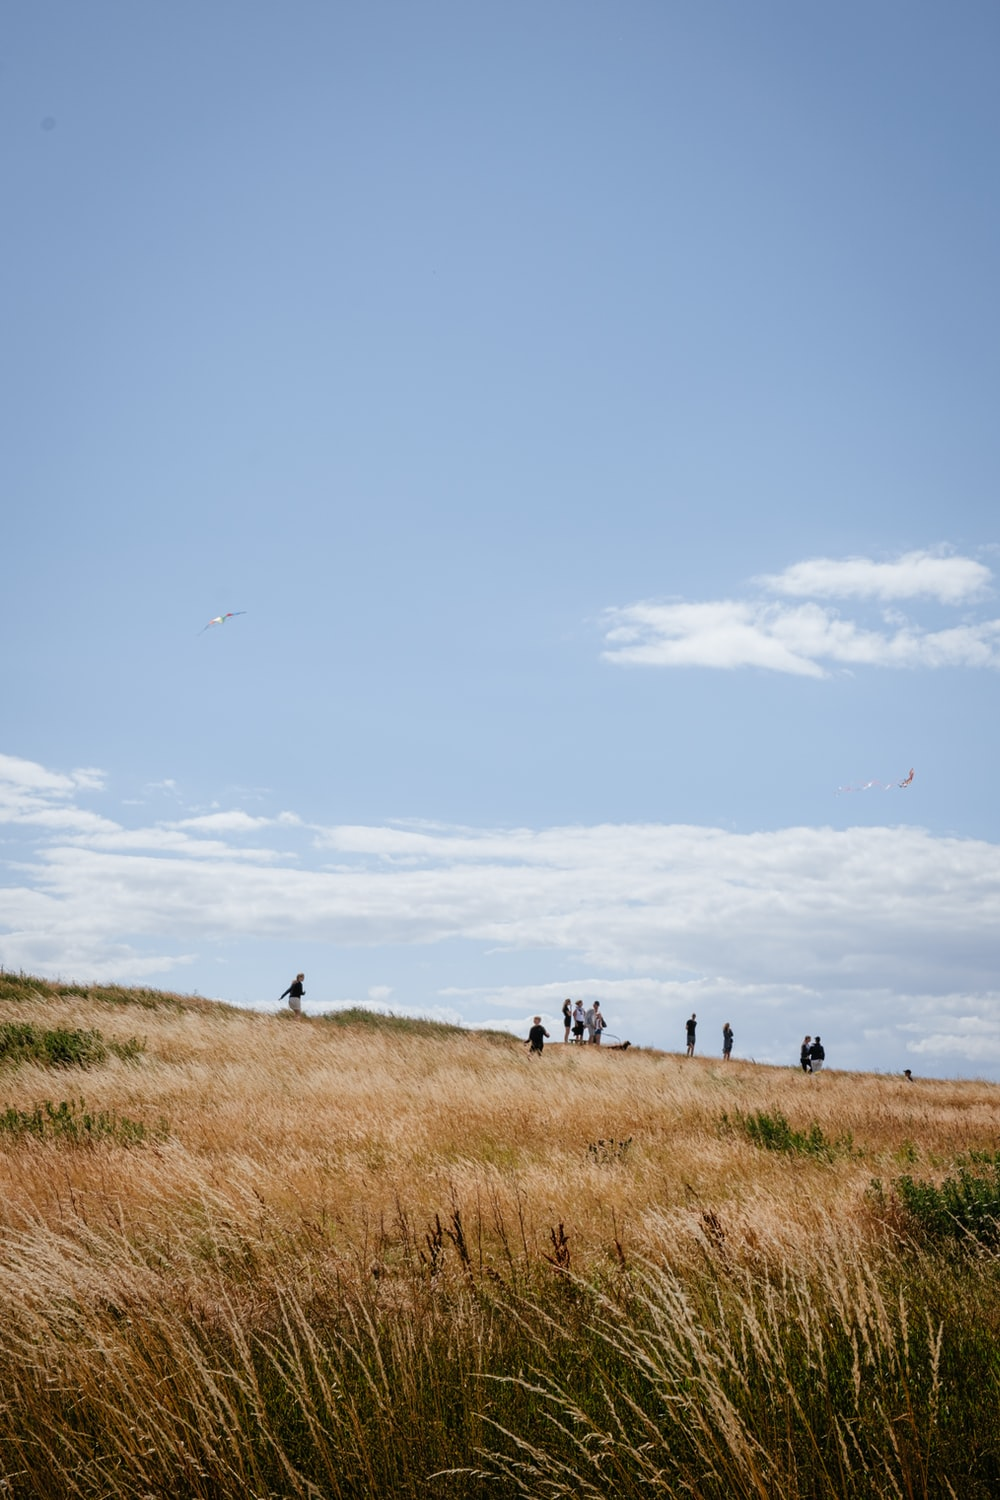 group of people walking on brown grass field during daytime